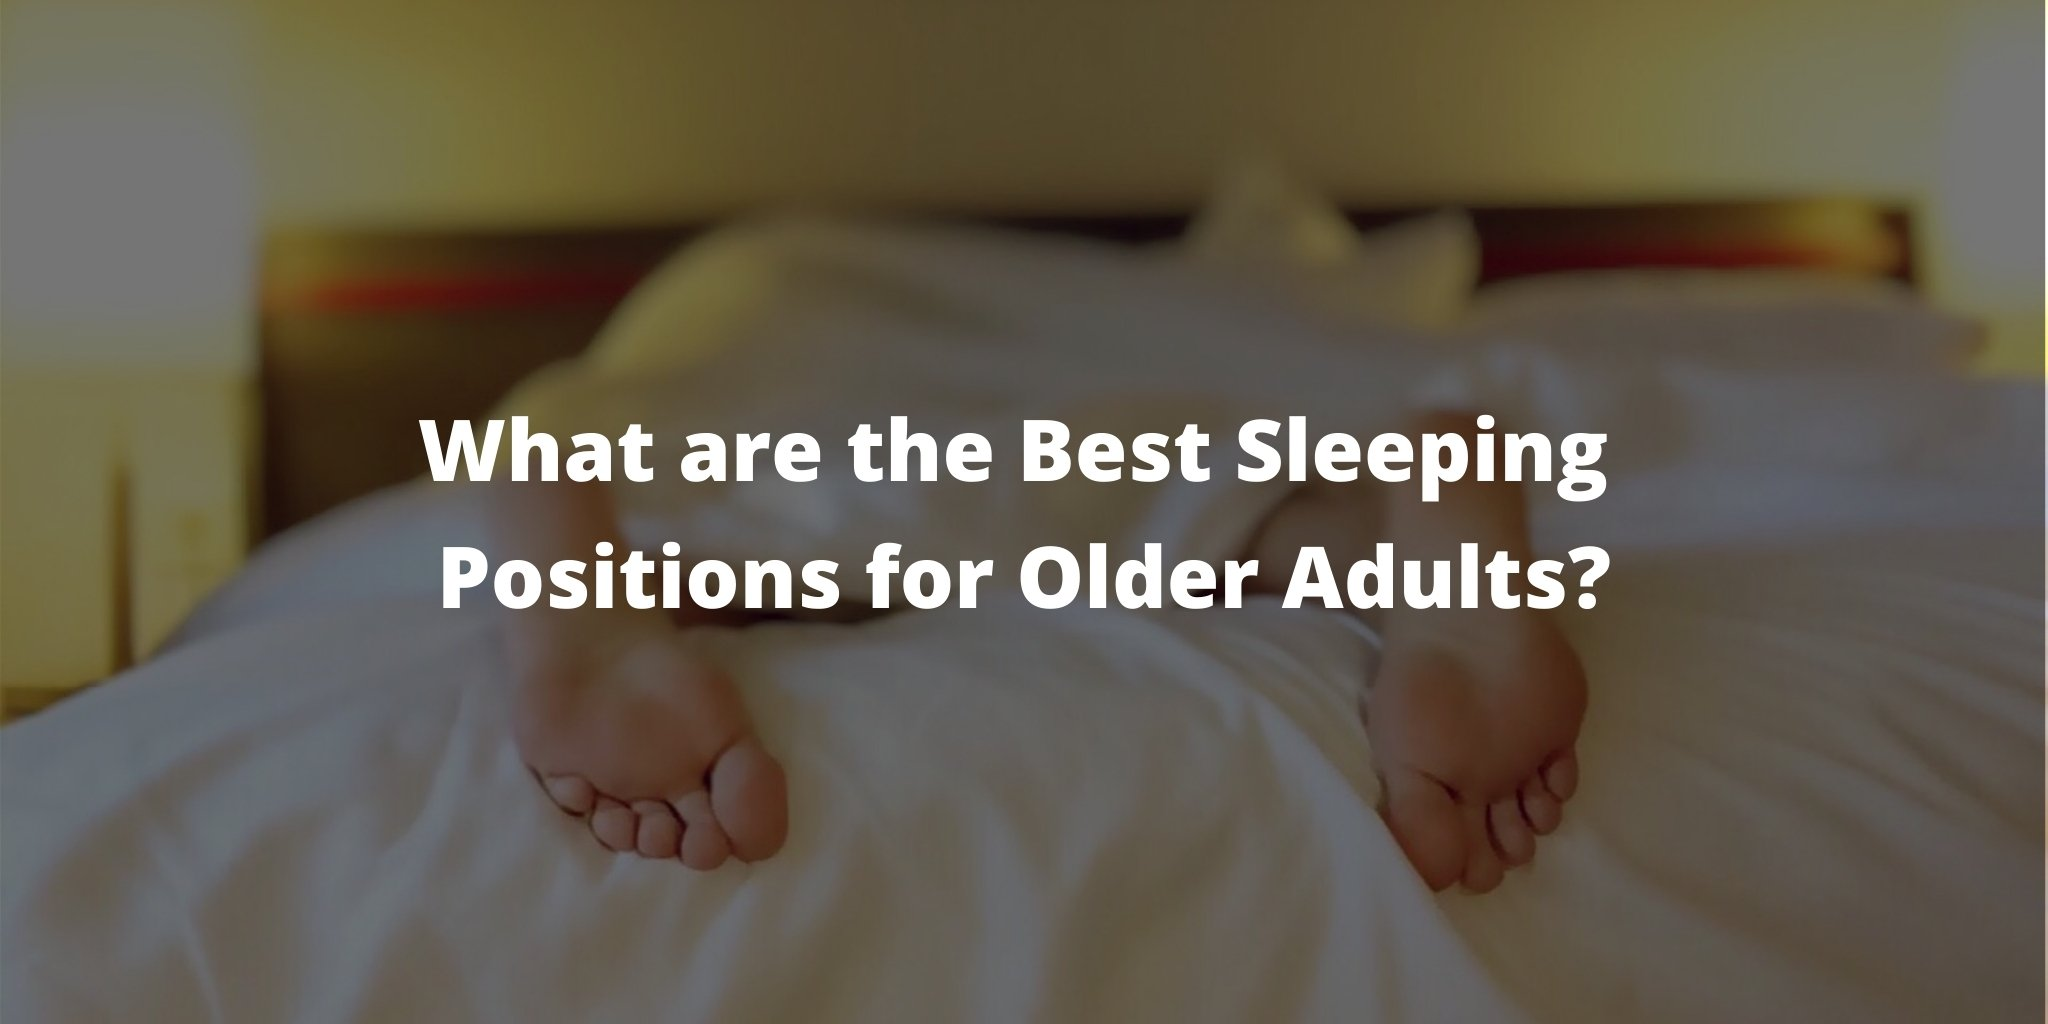 What are the Best Sleeping Positions for Older Adults?